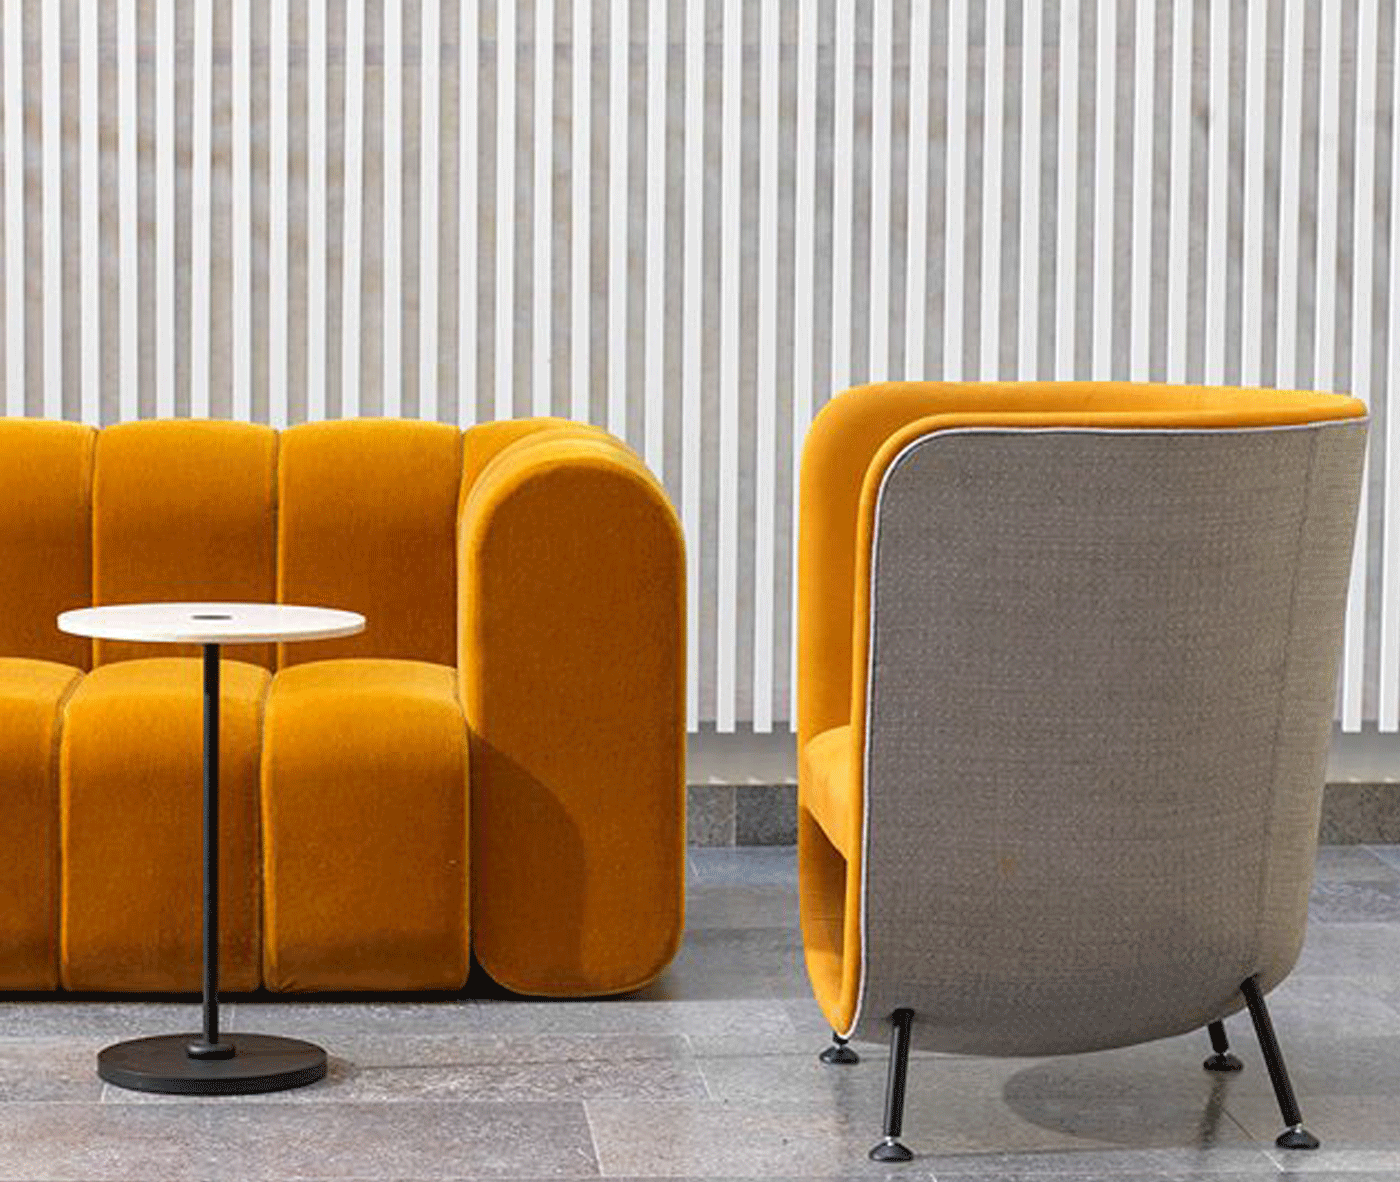 Sofa / Products For People